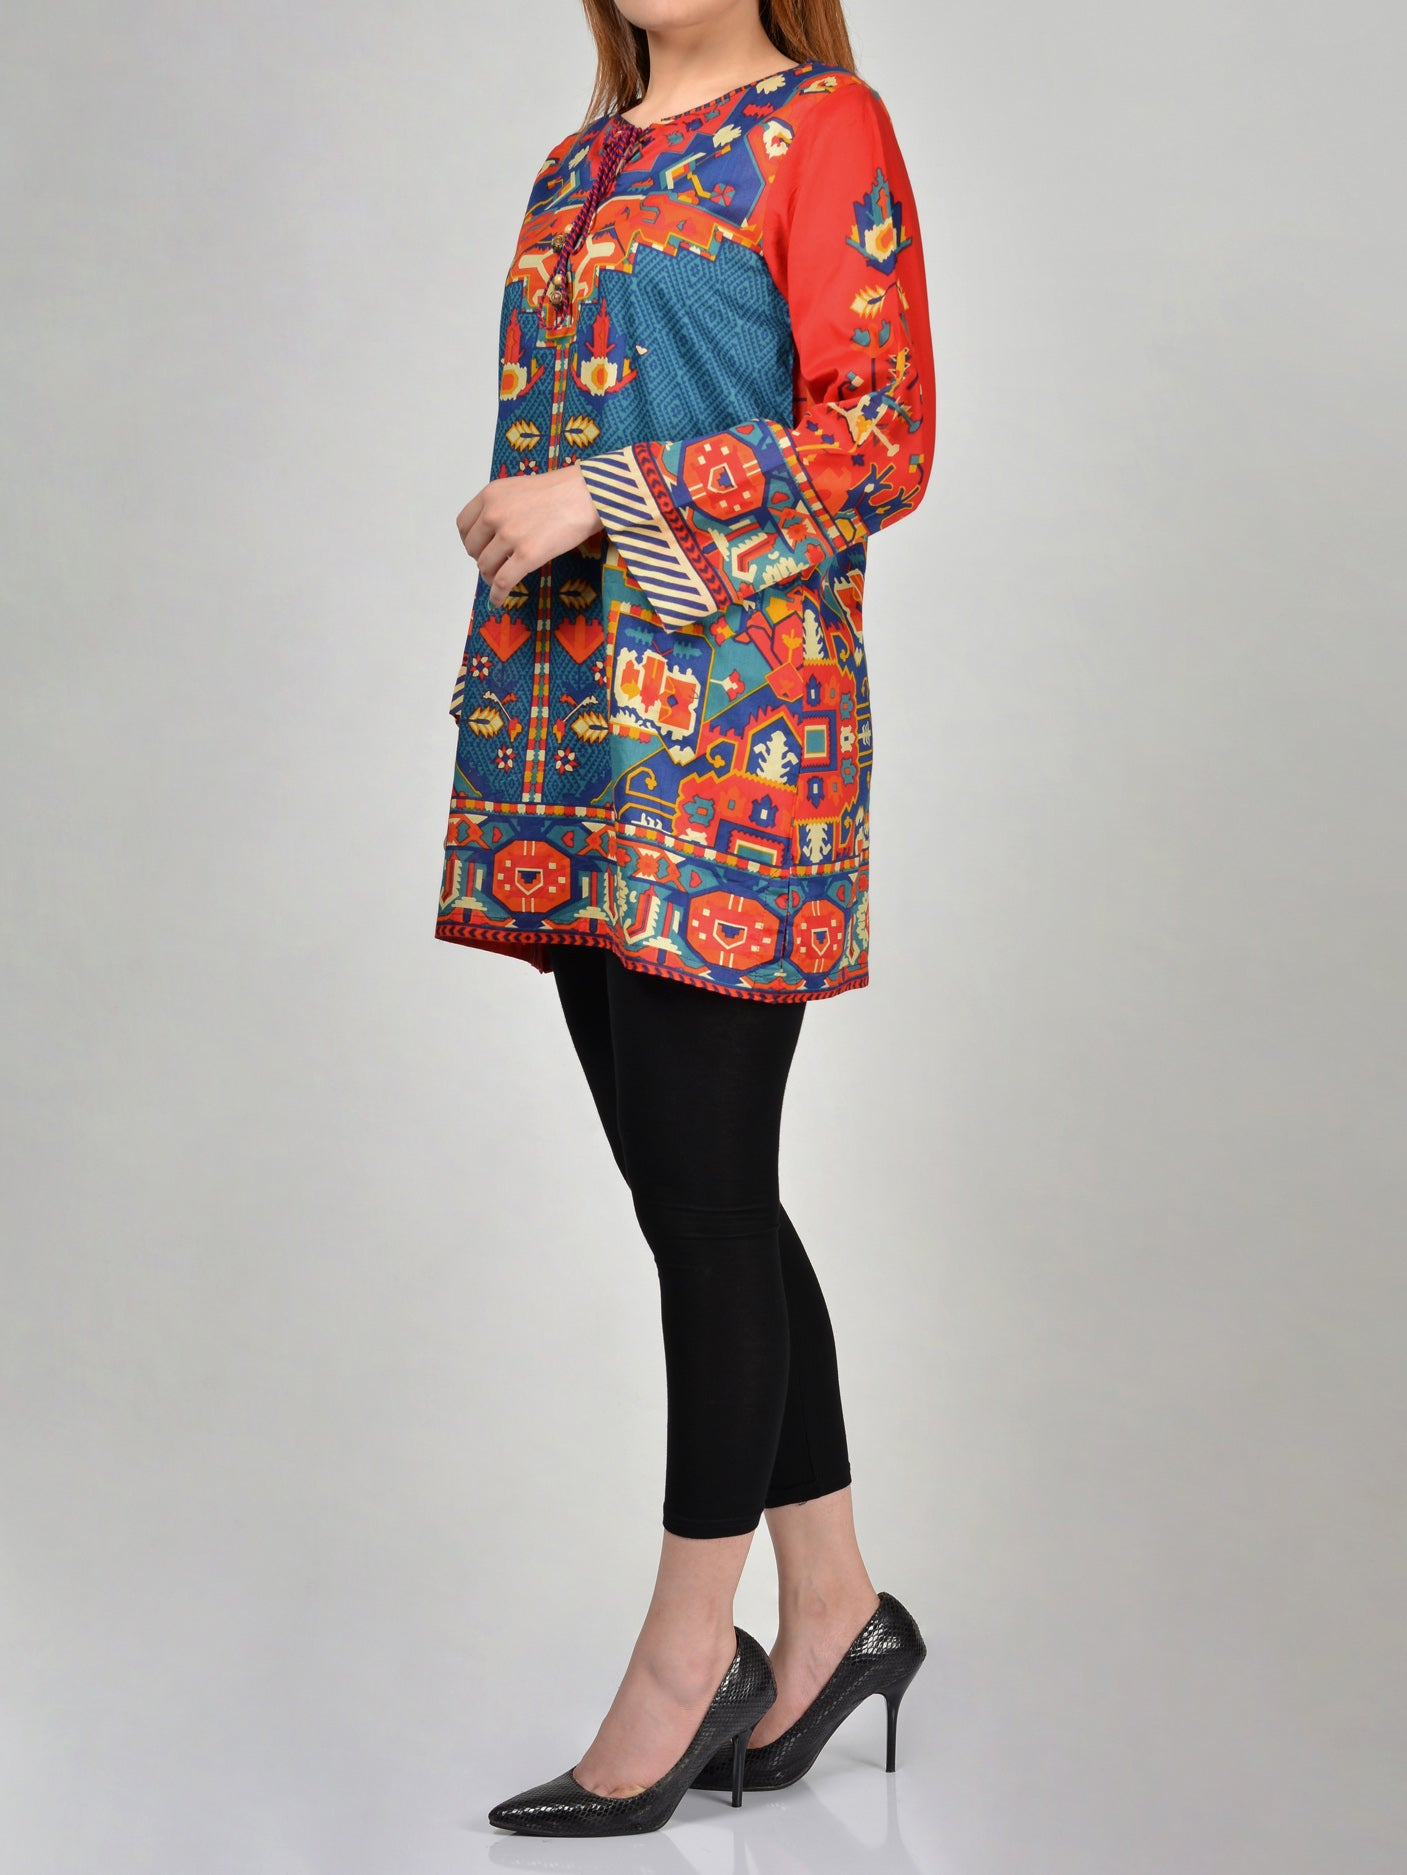 Buy Printed Lawn Shirts Online P0177